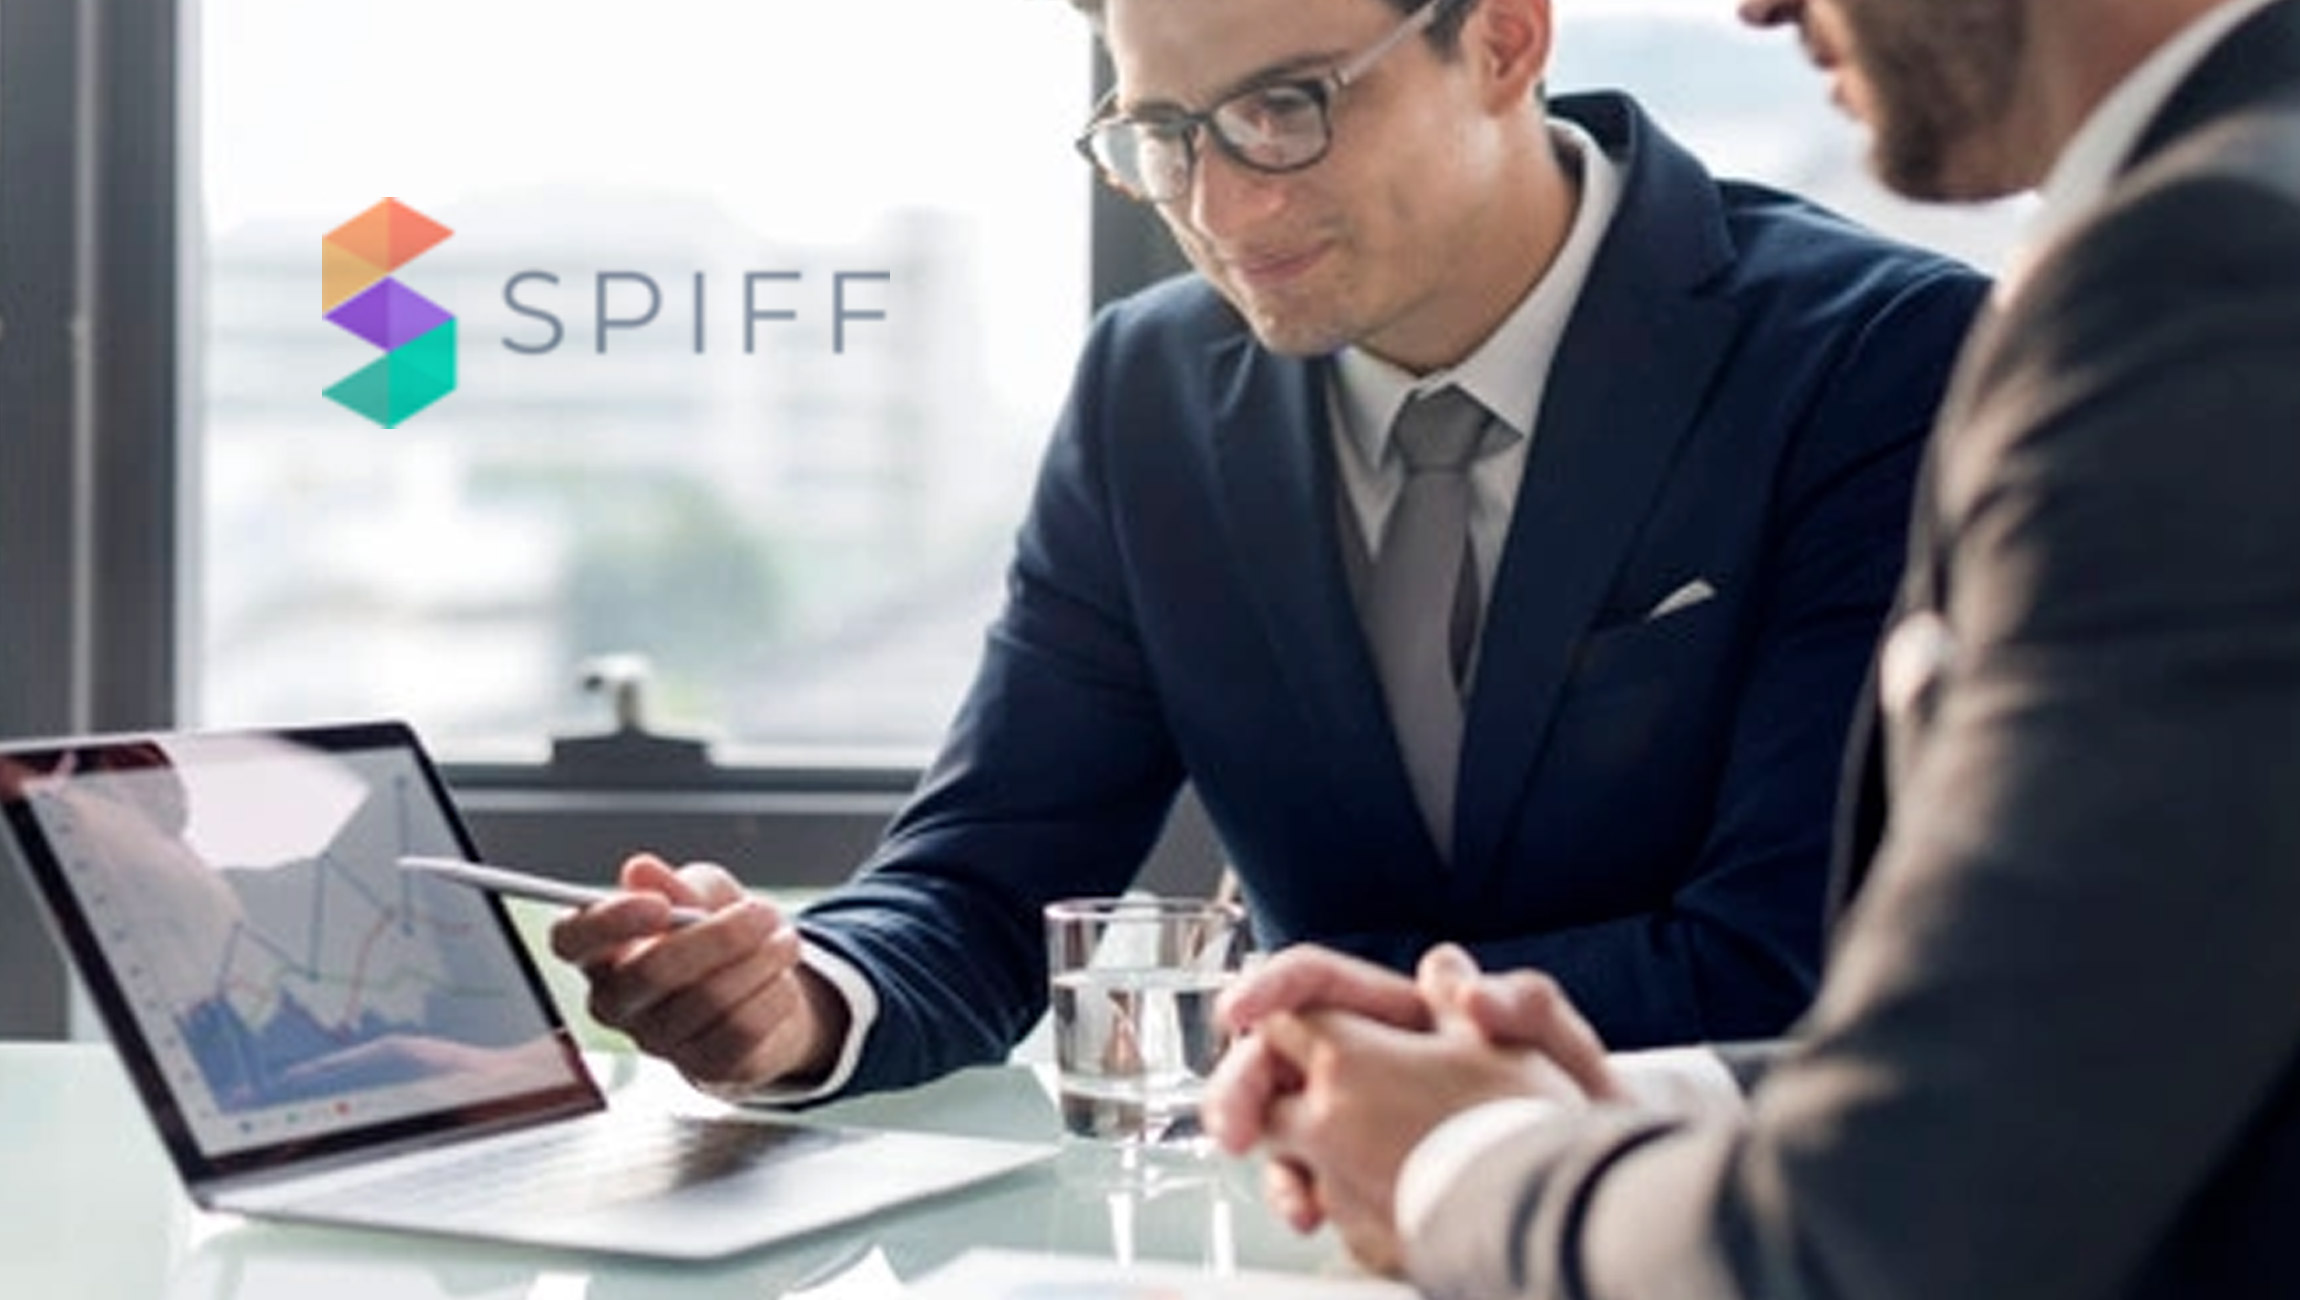 Spiff Secures Leadership Position in G2's Summer Sales Compensation Reports